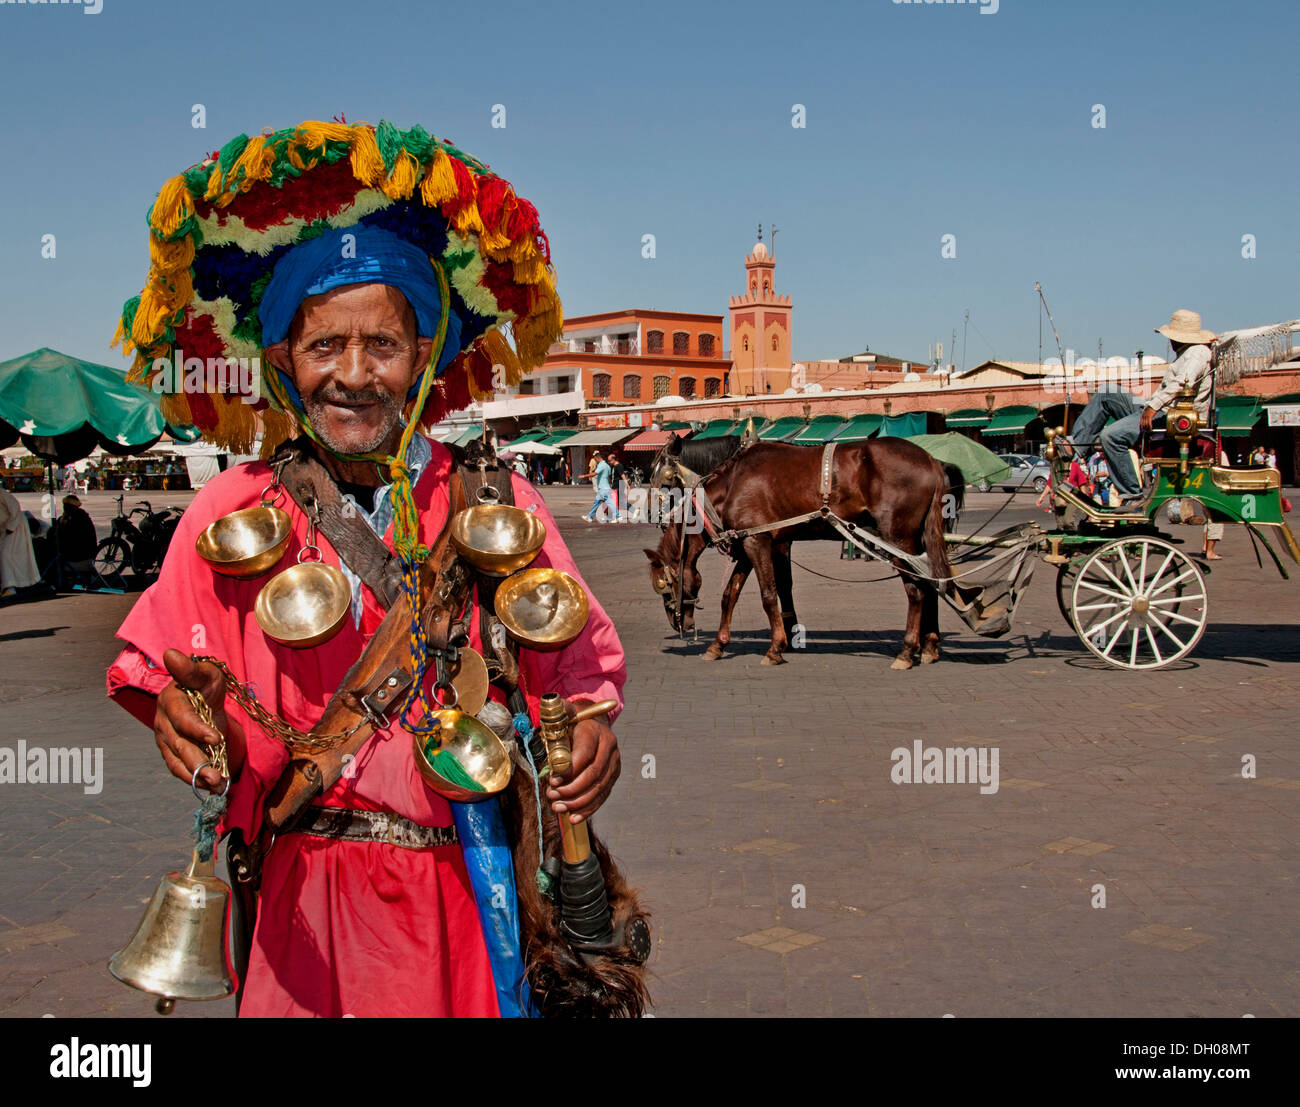 Moroccan water seller in traditional dress Jamaa el Fna square market place in Marrakesh's Medina quarter Morocco Stock Photo